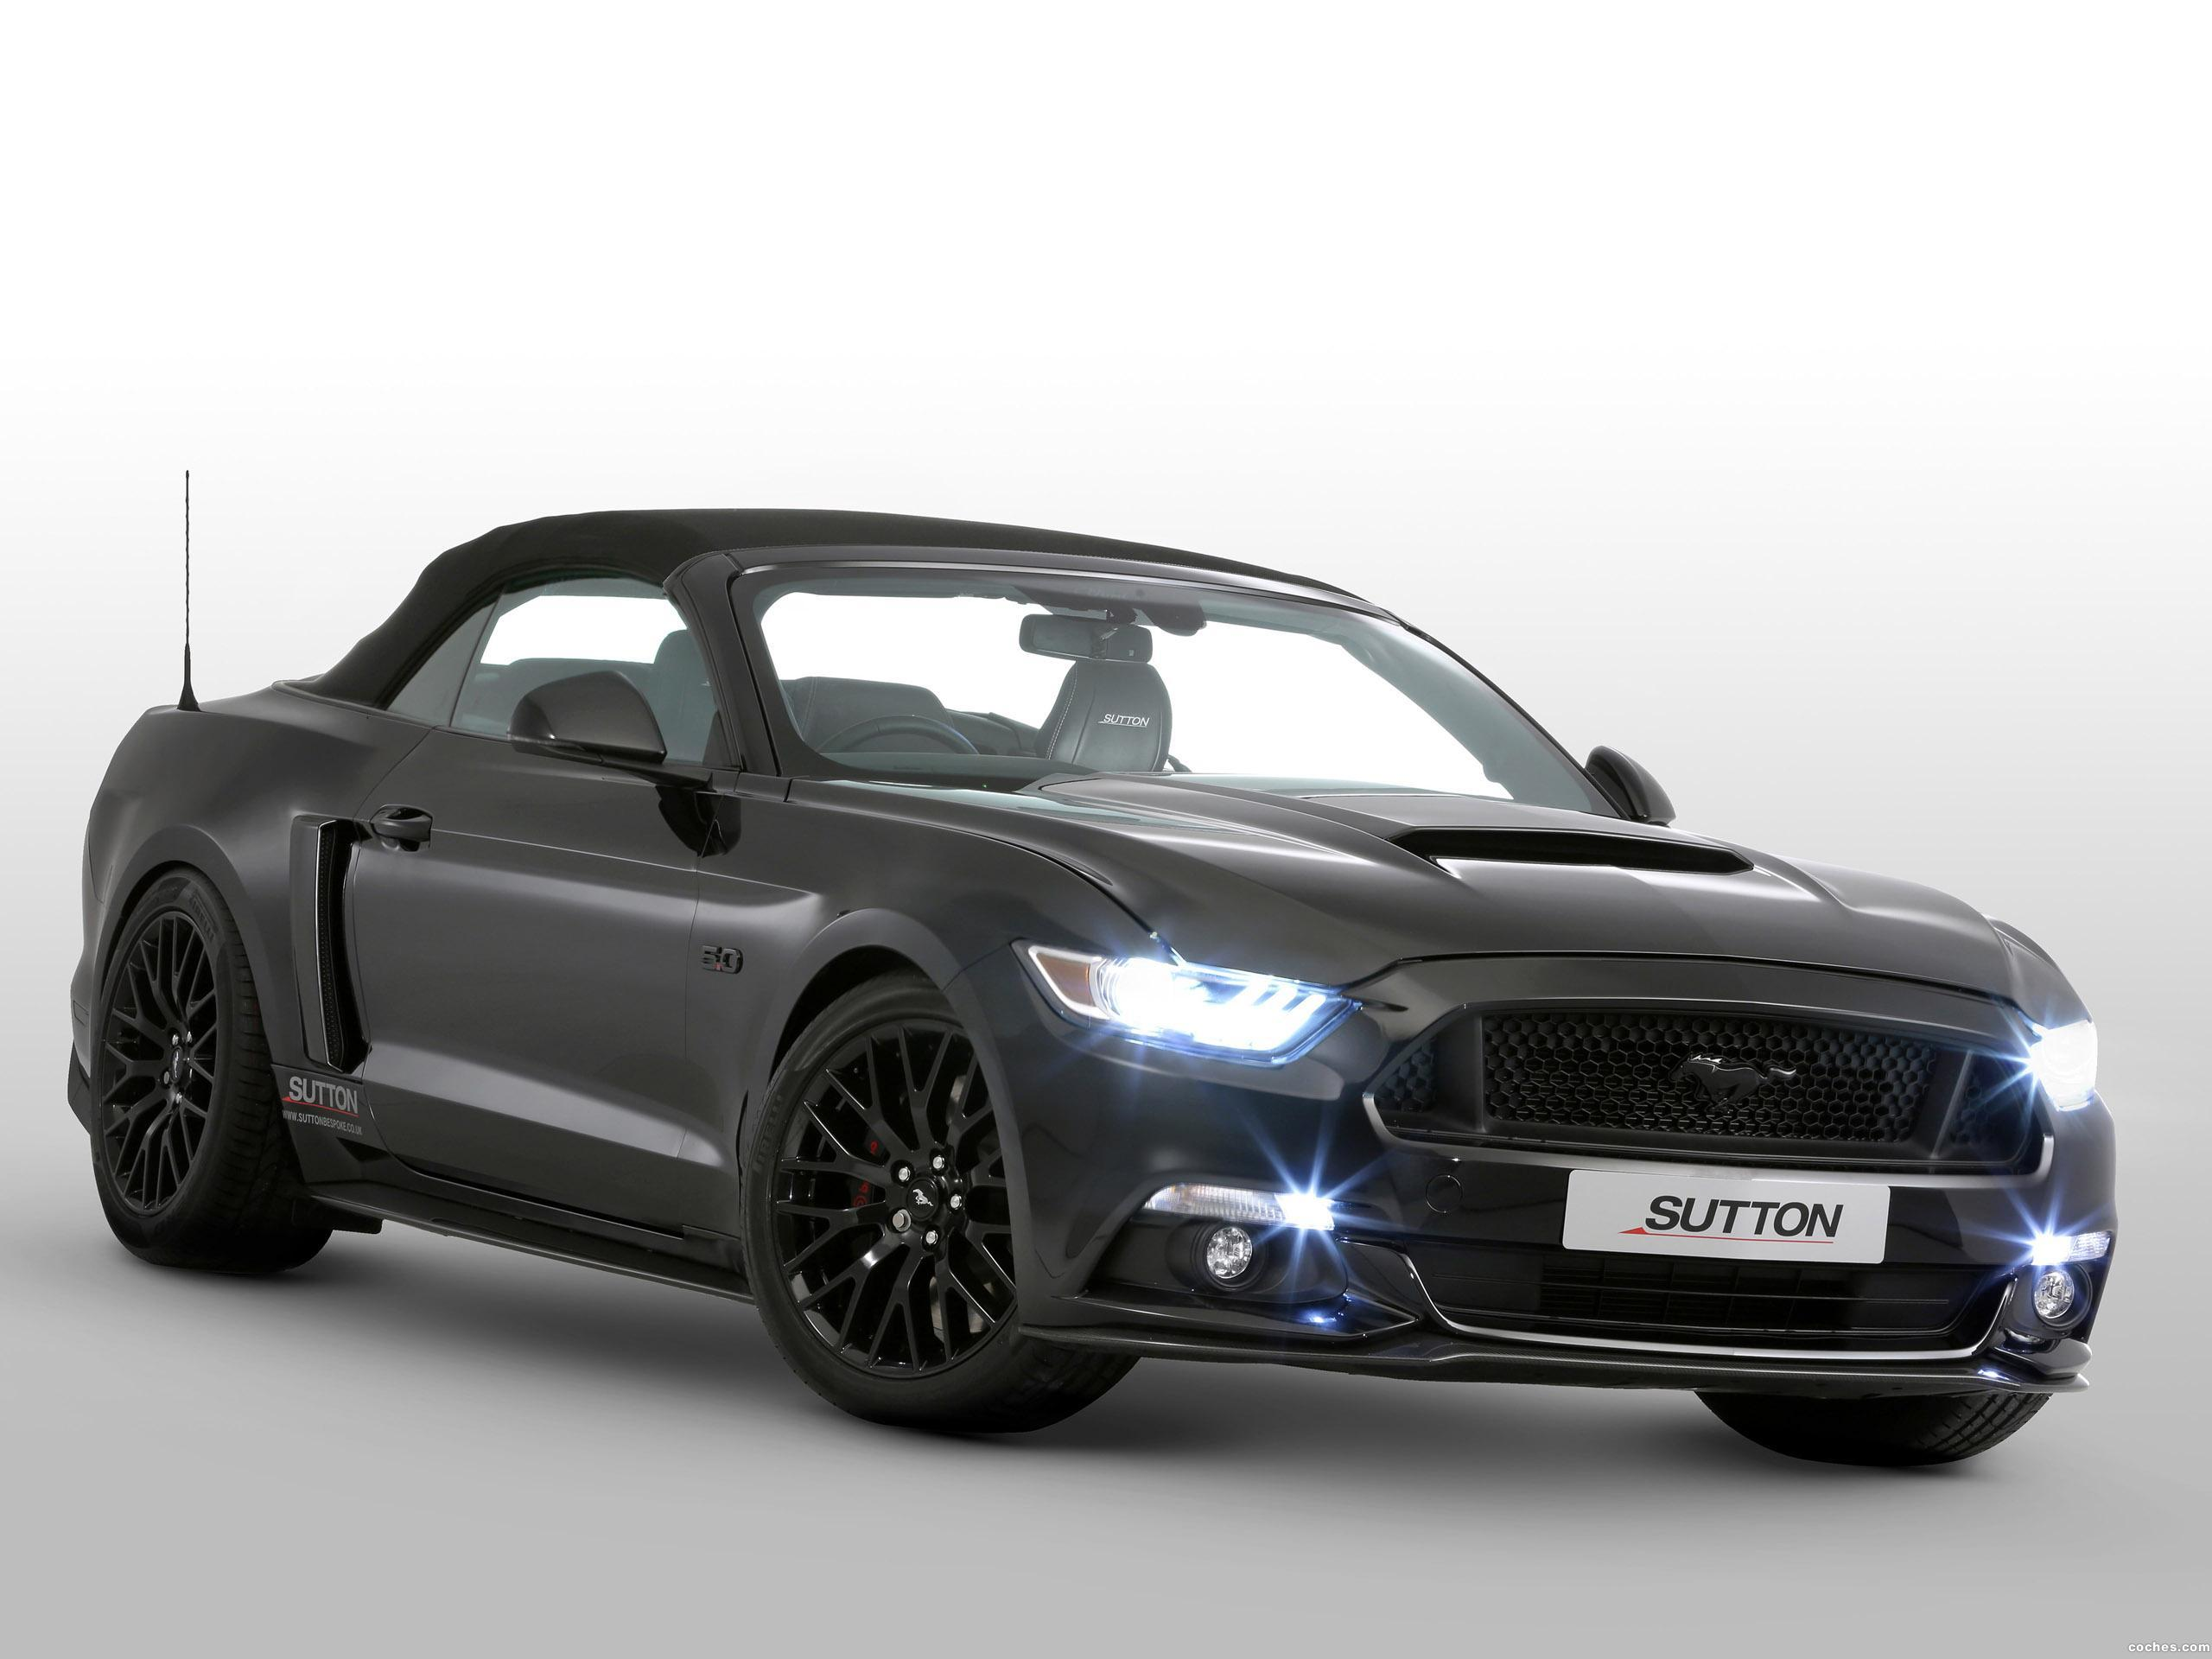 Foto 3 de Clive Sutton Ford Mustang CS500 Convertible 2016